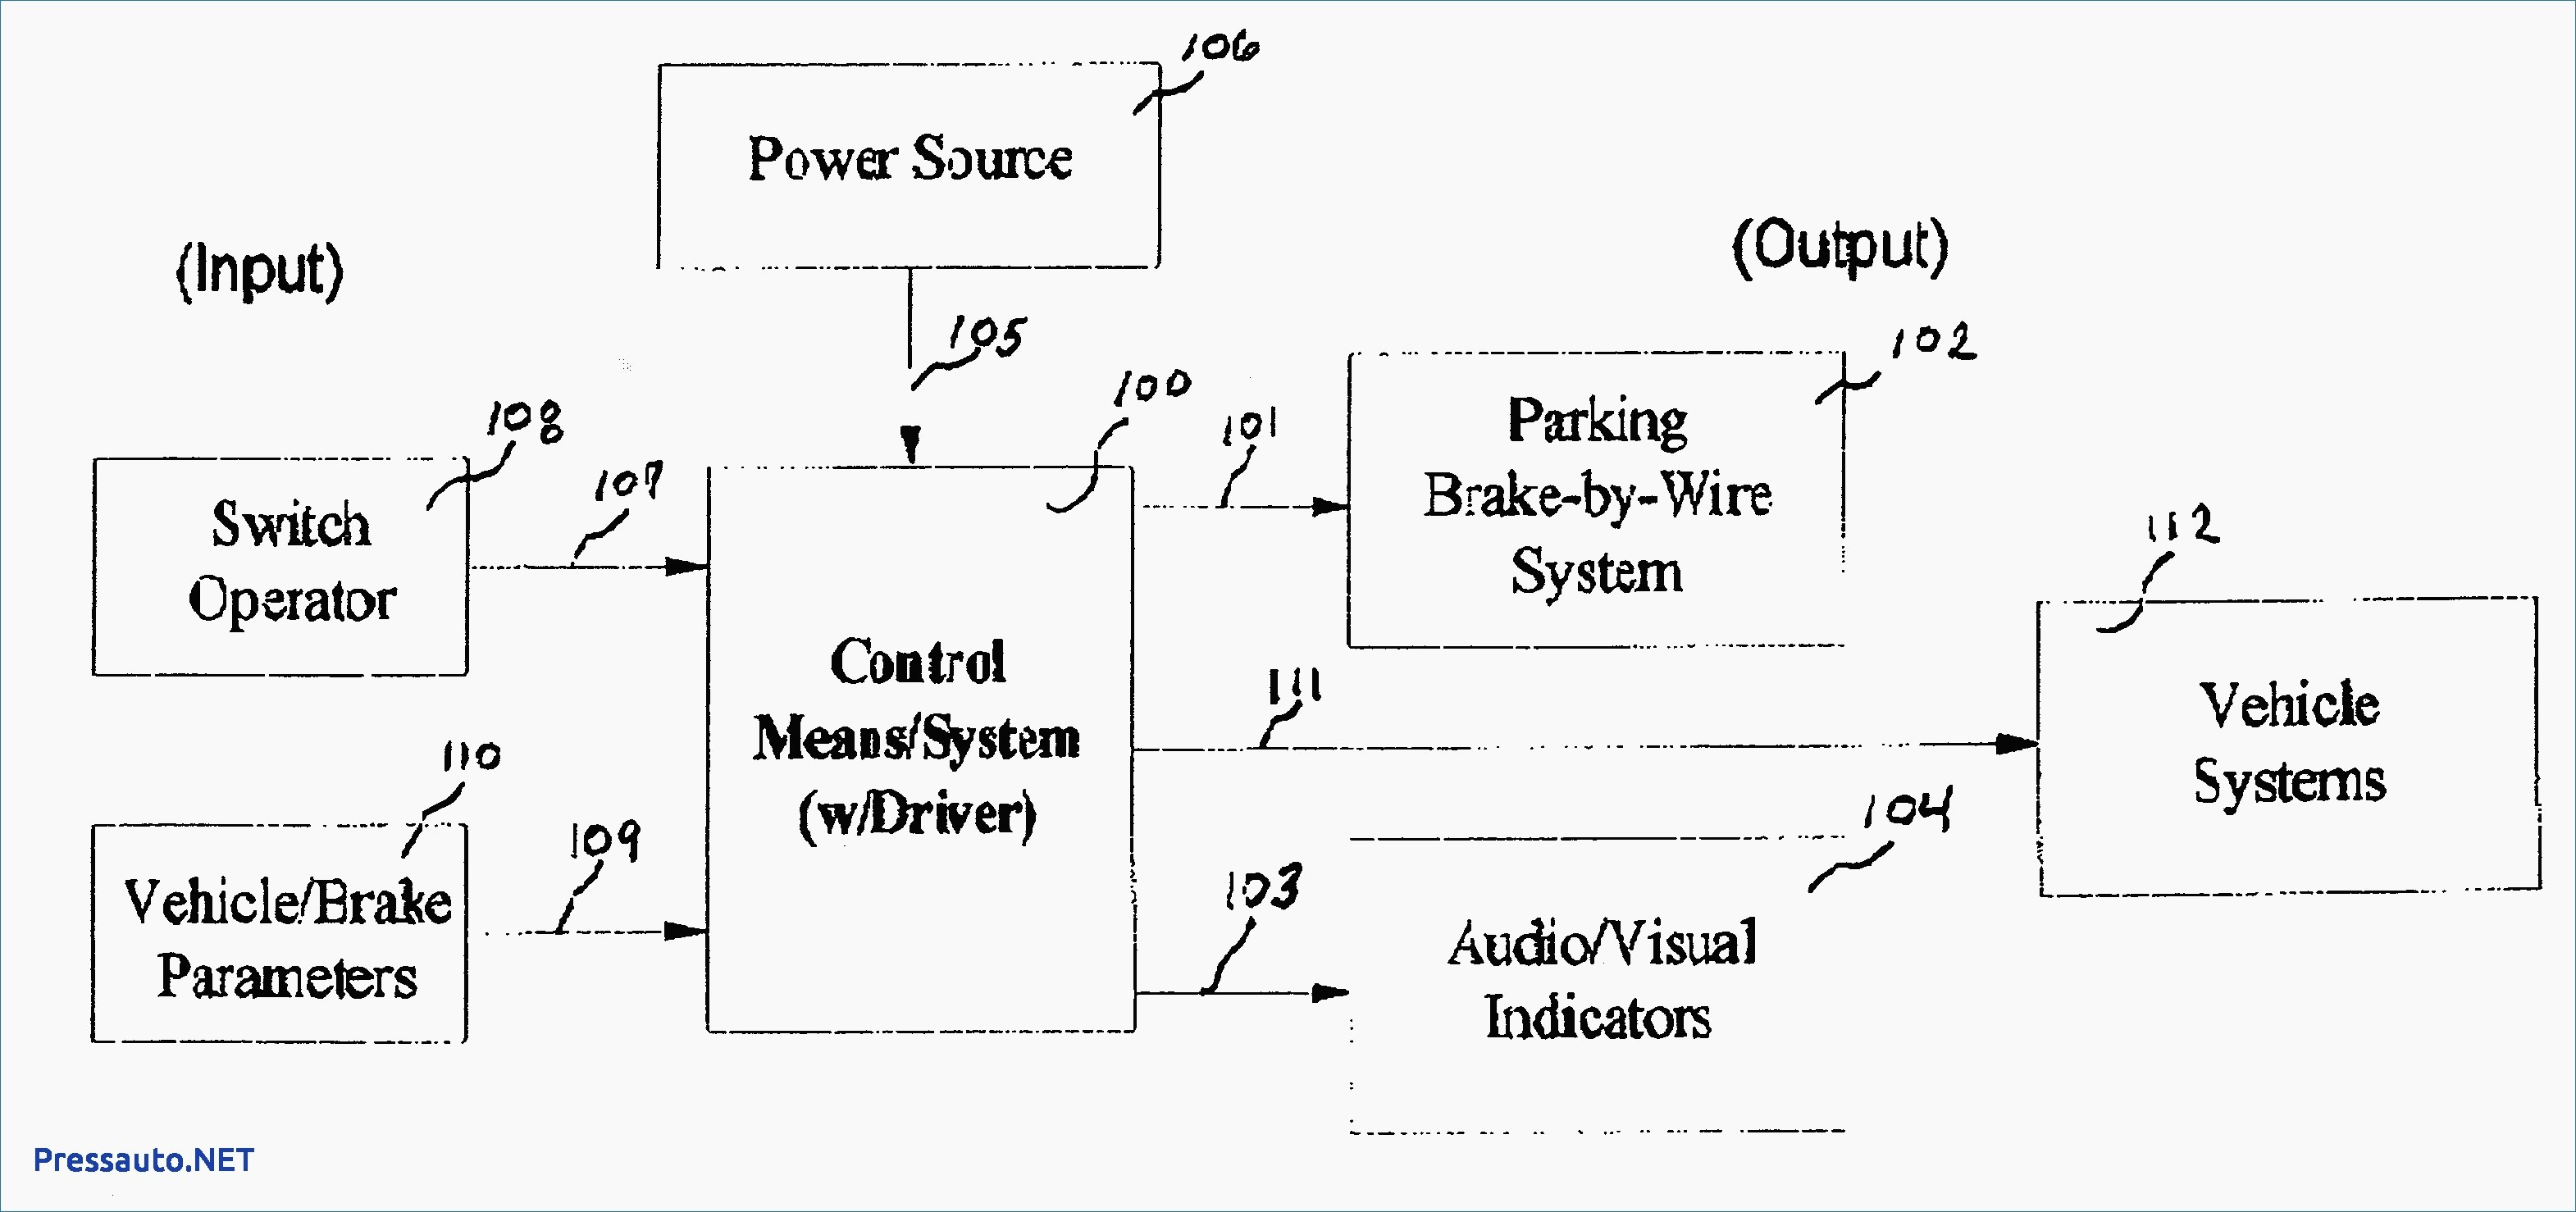 Tekonsha Voyager Wiring Diagram Ford from mainetreasurechest.com